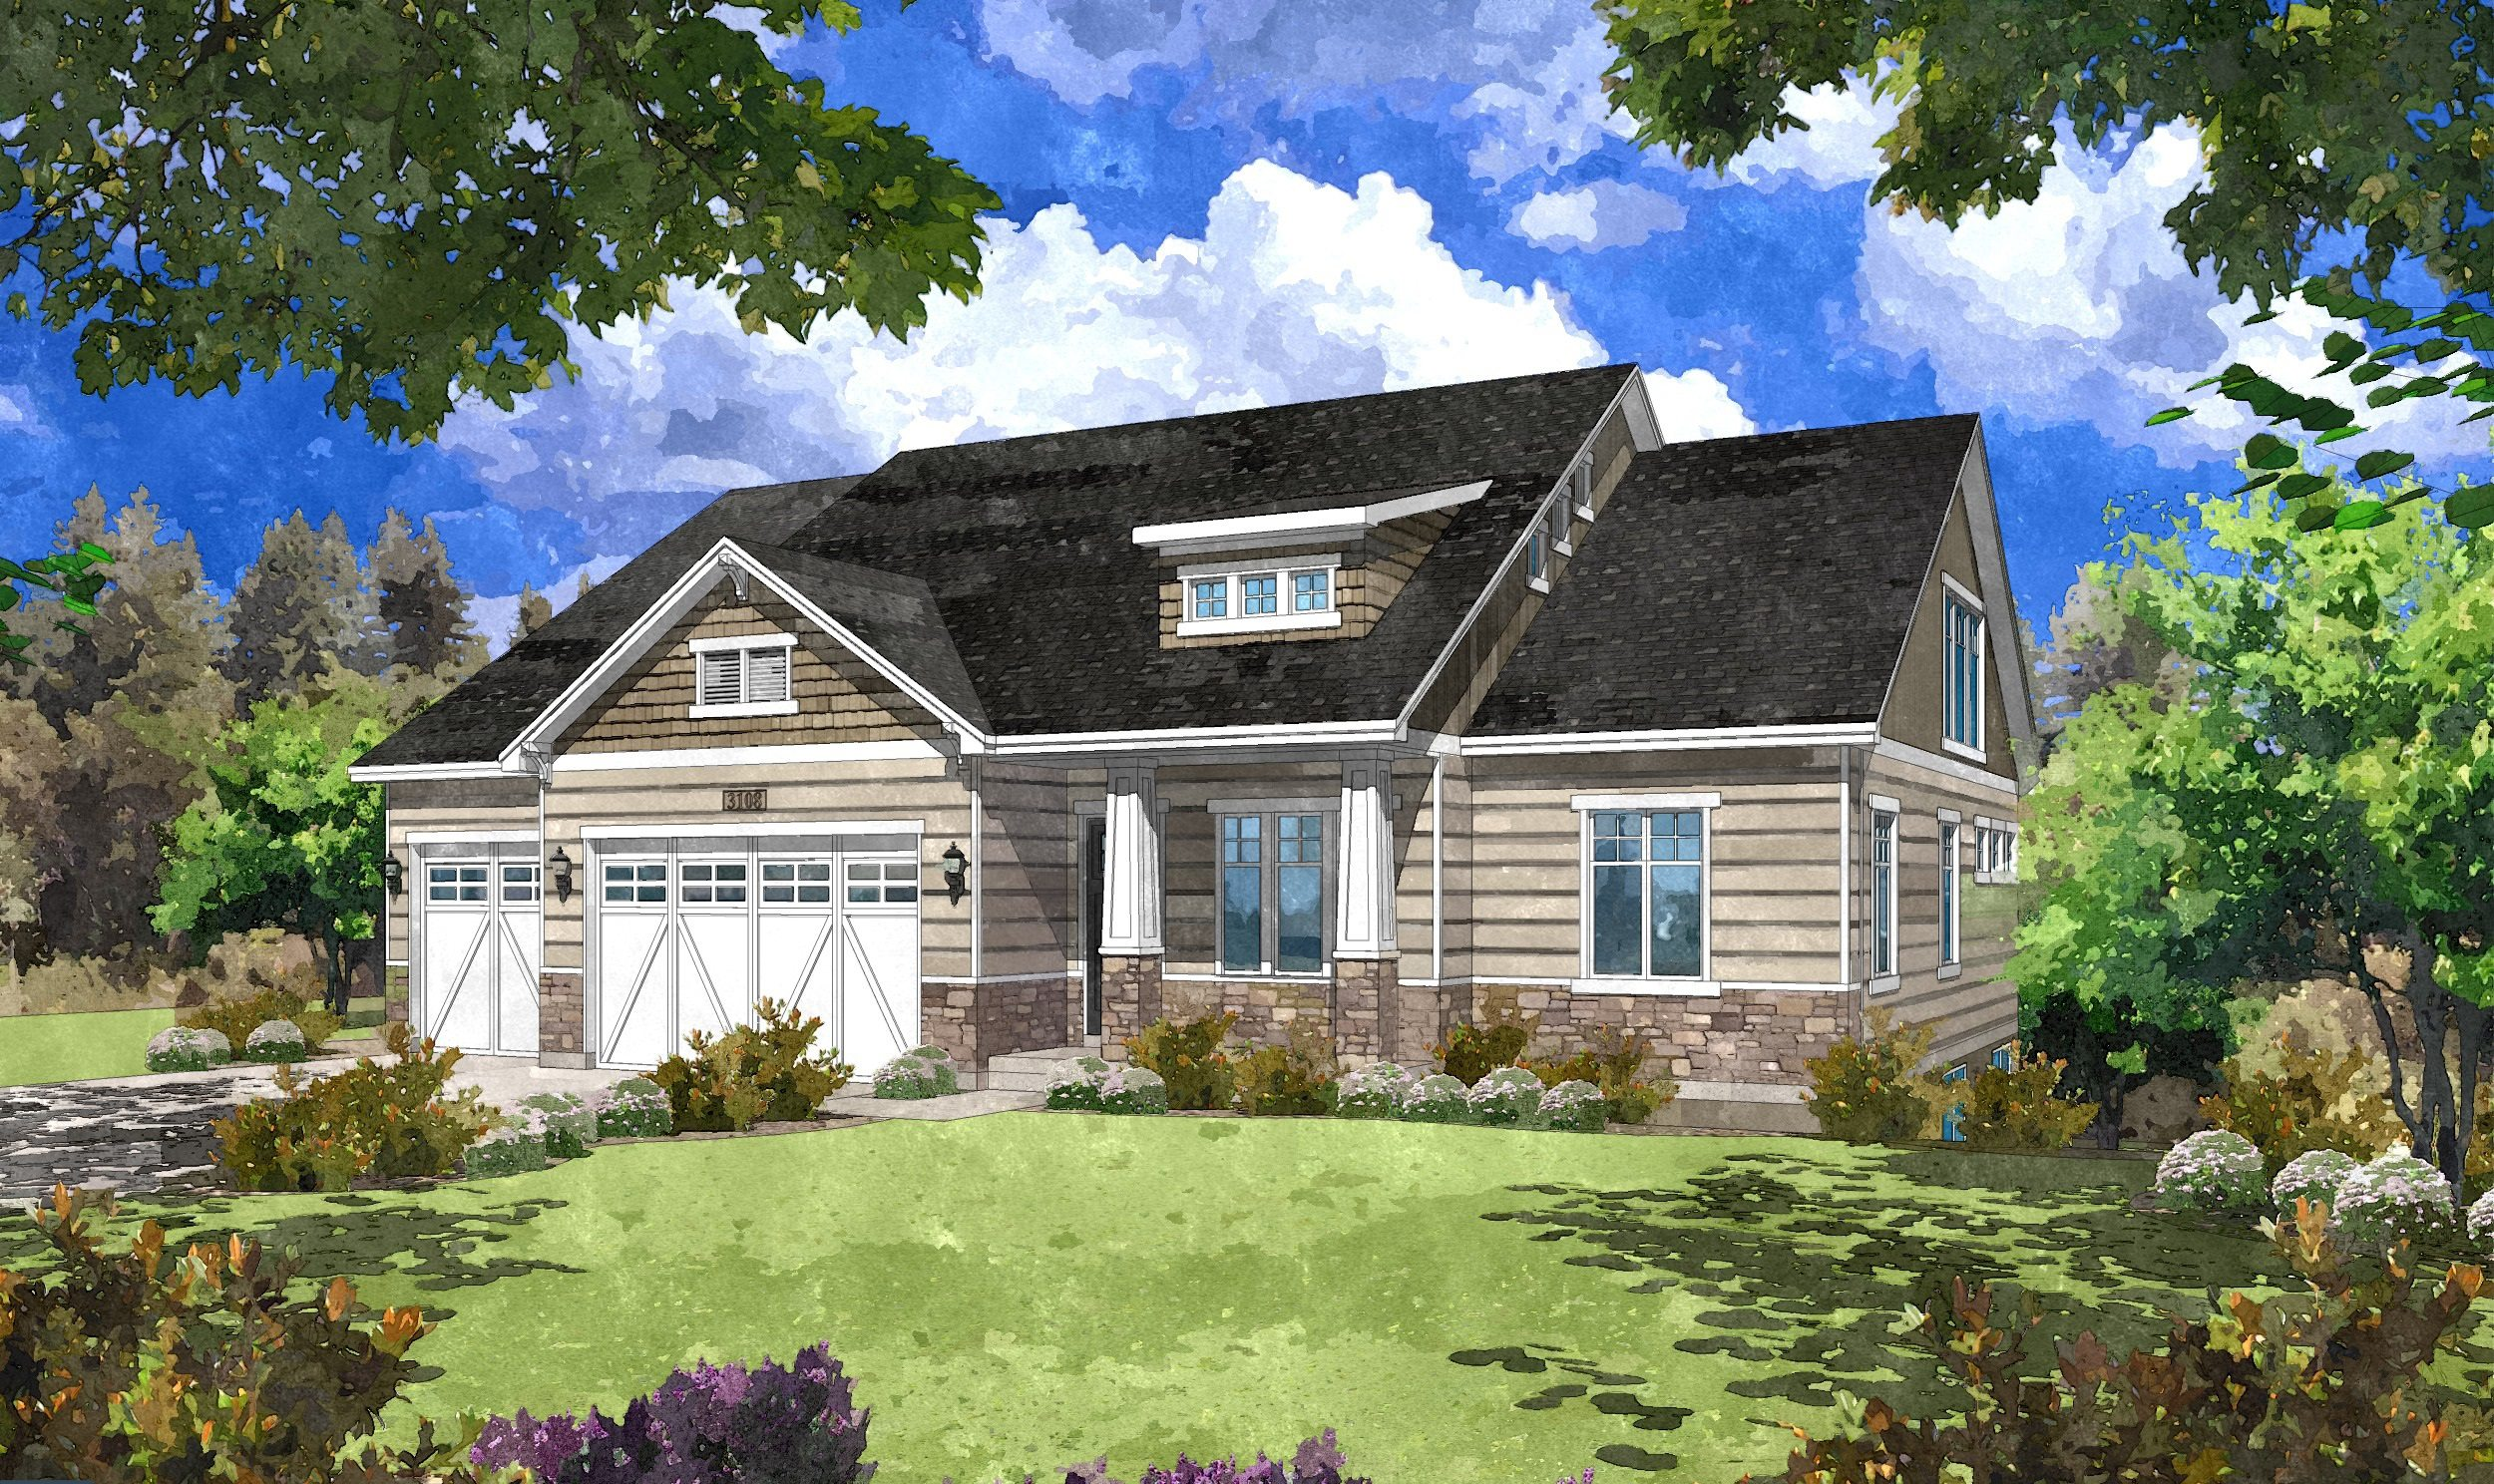 LY 322 Fox Hollow wc